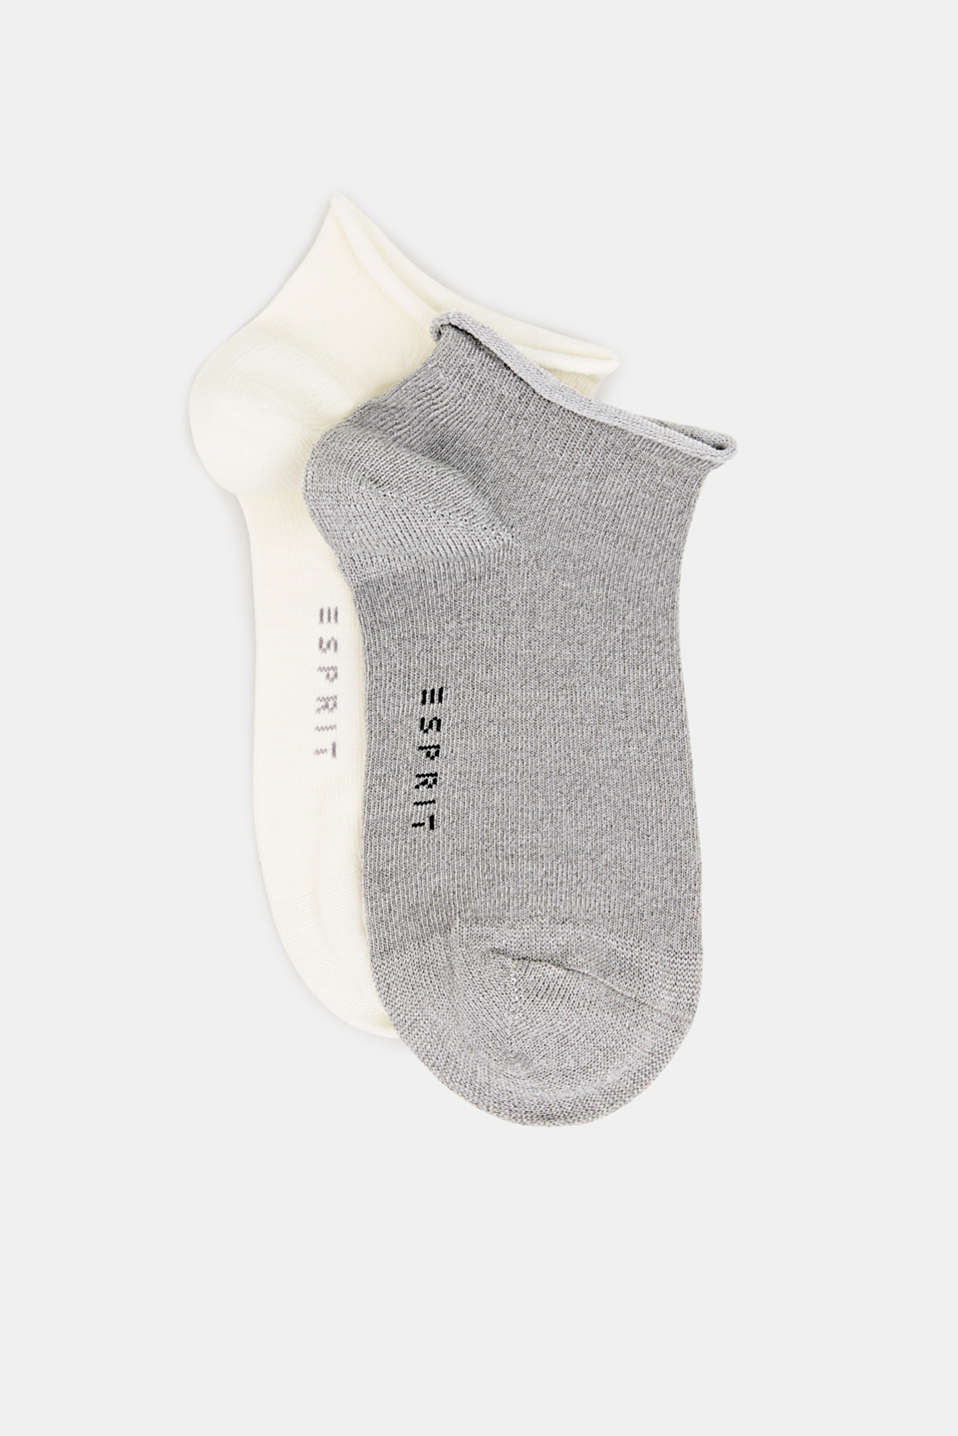 In a double pack: Trainer socks with glitter, SORTIMENT, detail image number 0